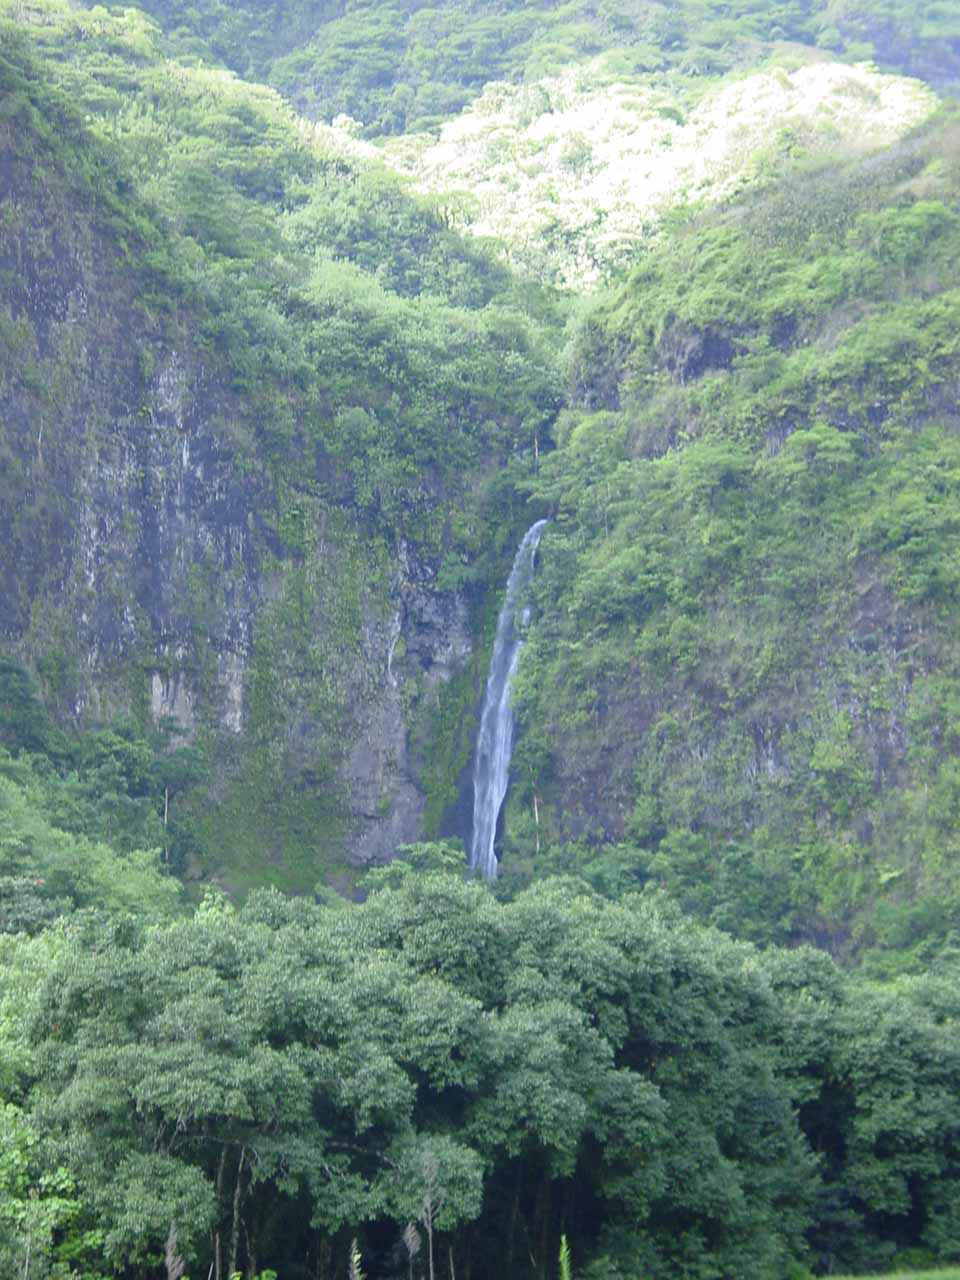 Topatari Waterfall, which was one of the main waterfalls seen on this 4wd tour through Papenoo Valley